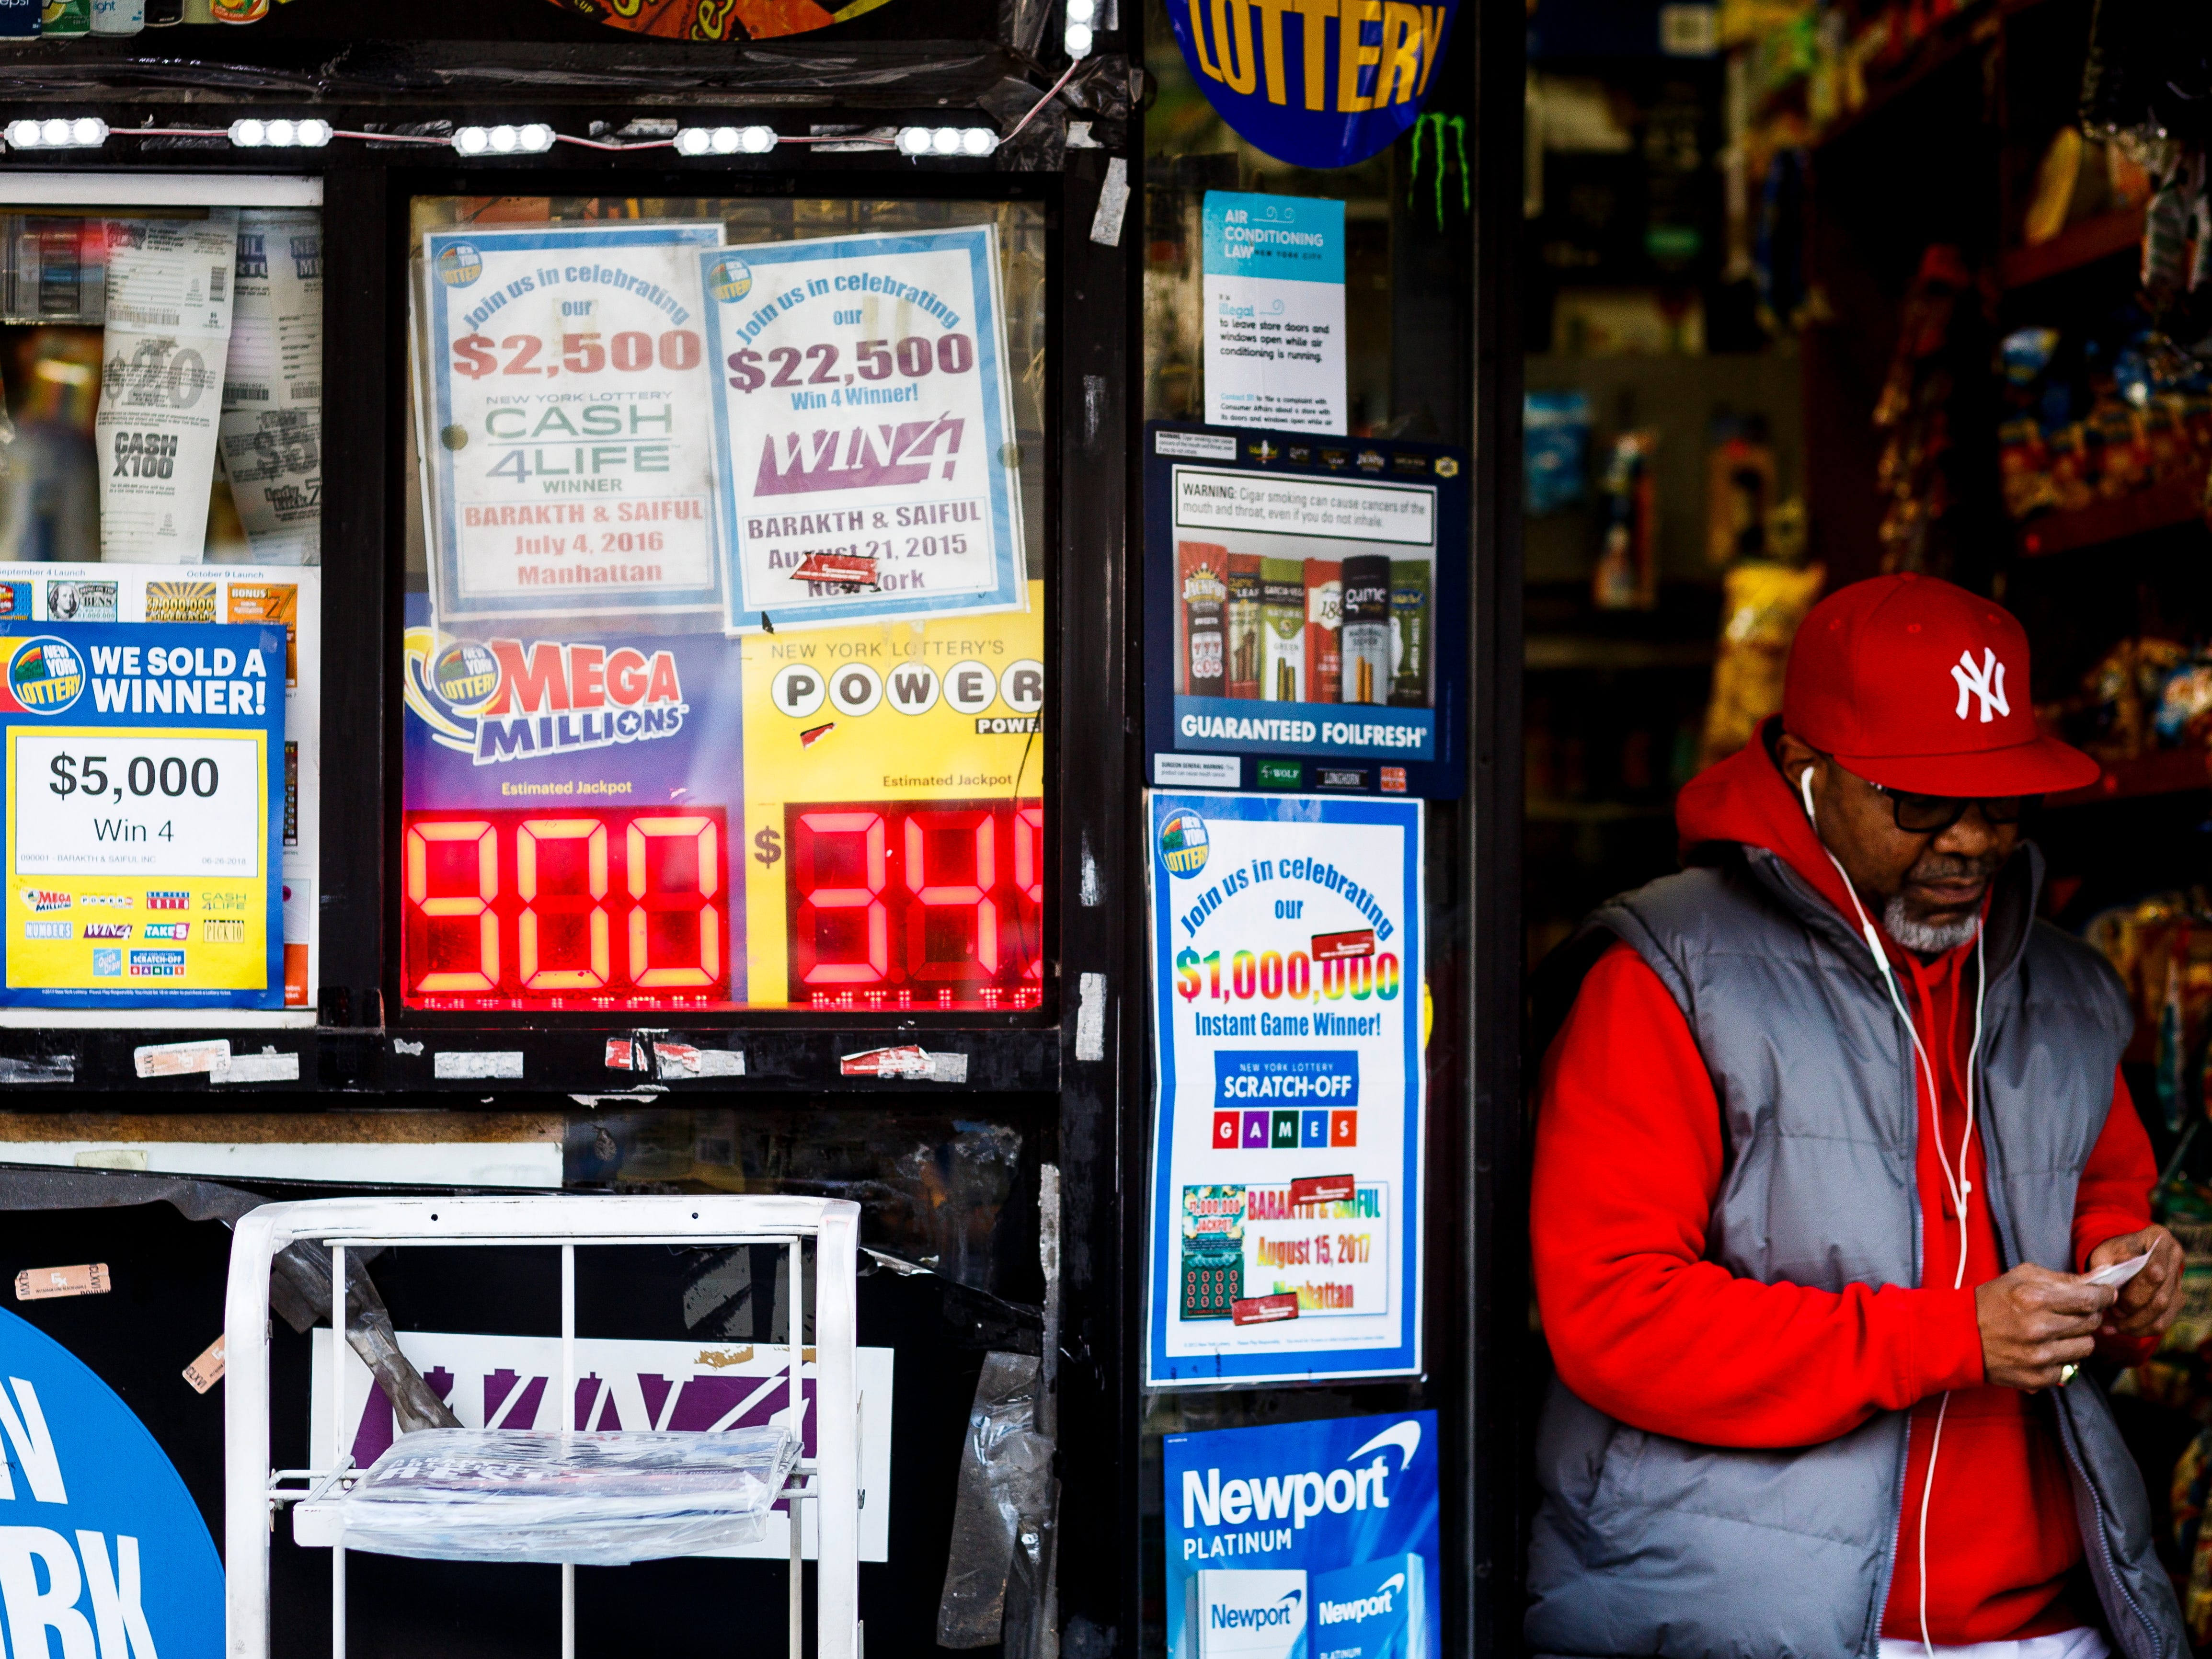 A view of a sign showing the jackpot for the Mega Millions lottery at $900 million in New York, Oct. 17, 2018.